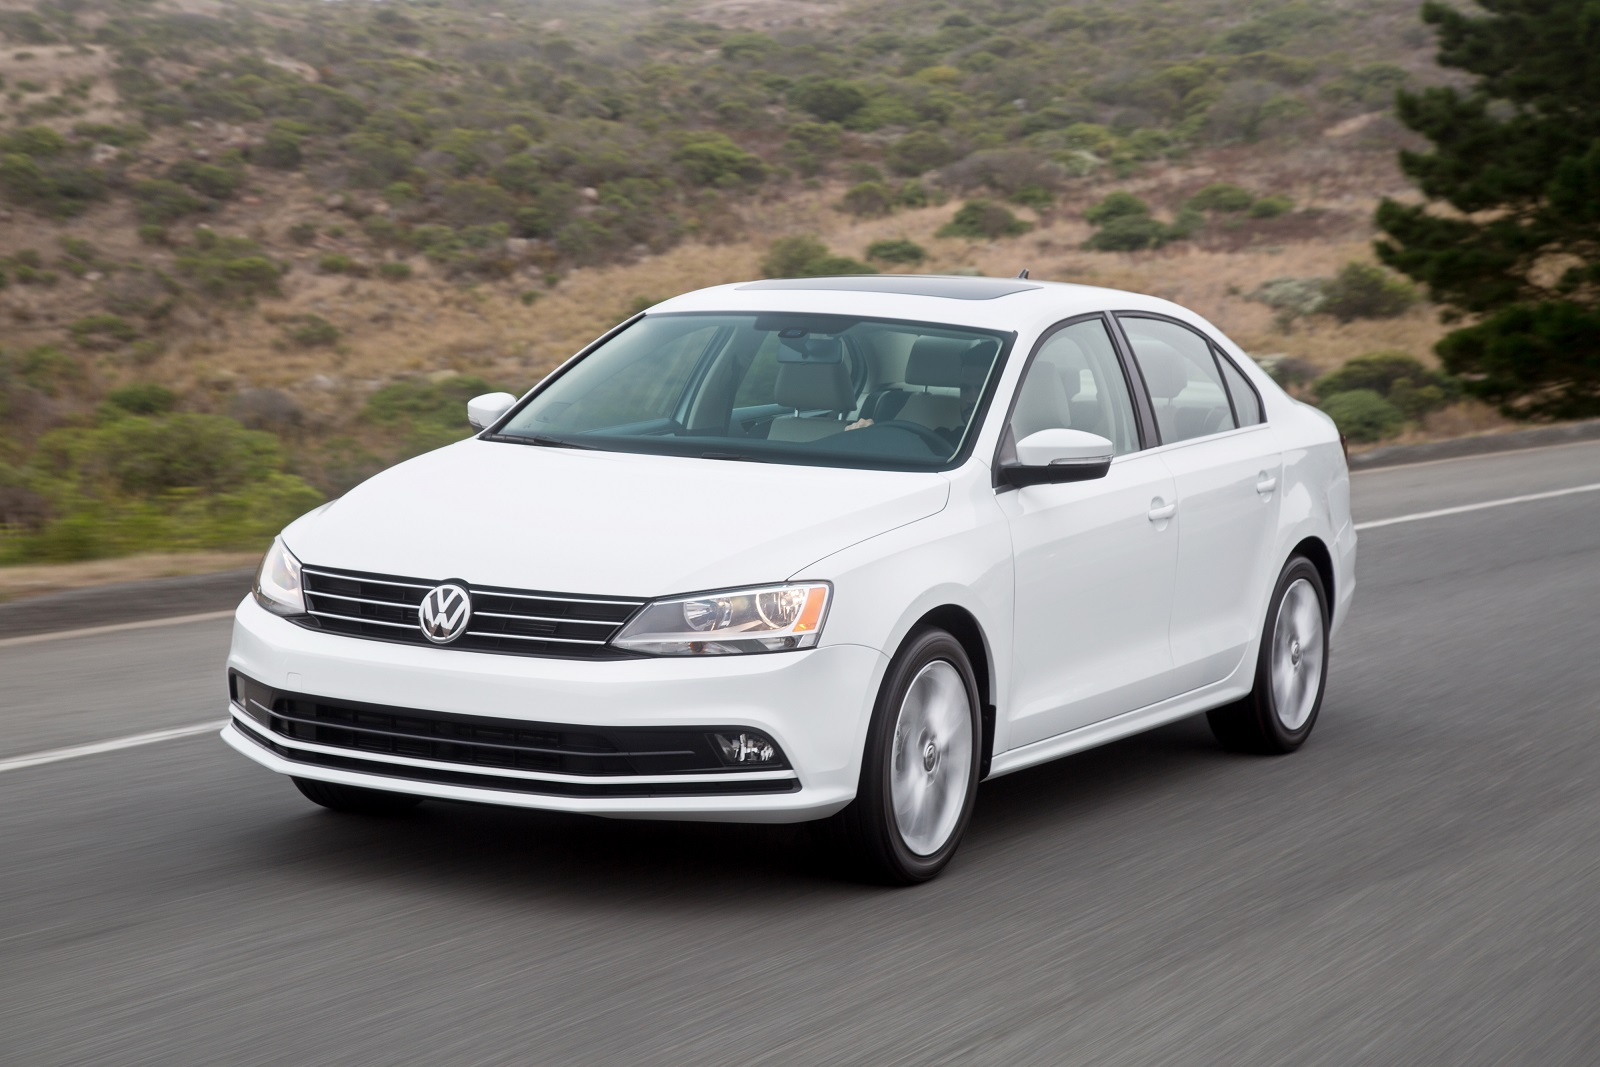 2016 Volkswagen Jetta Vw Review Ratings Specs Prices